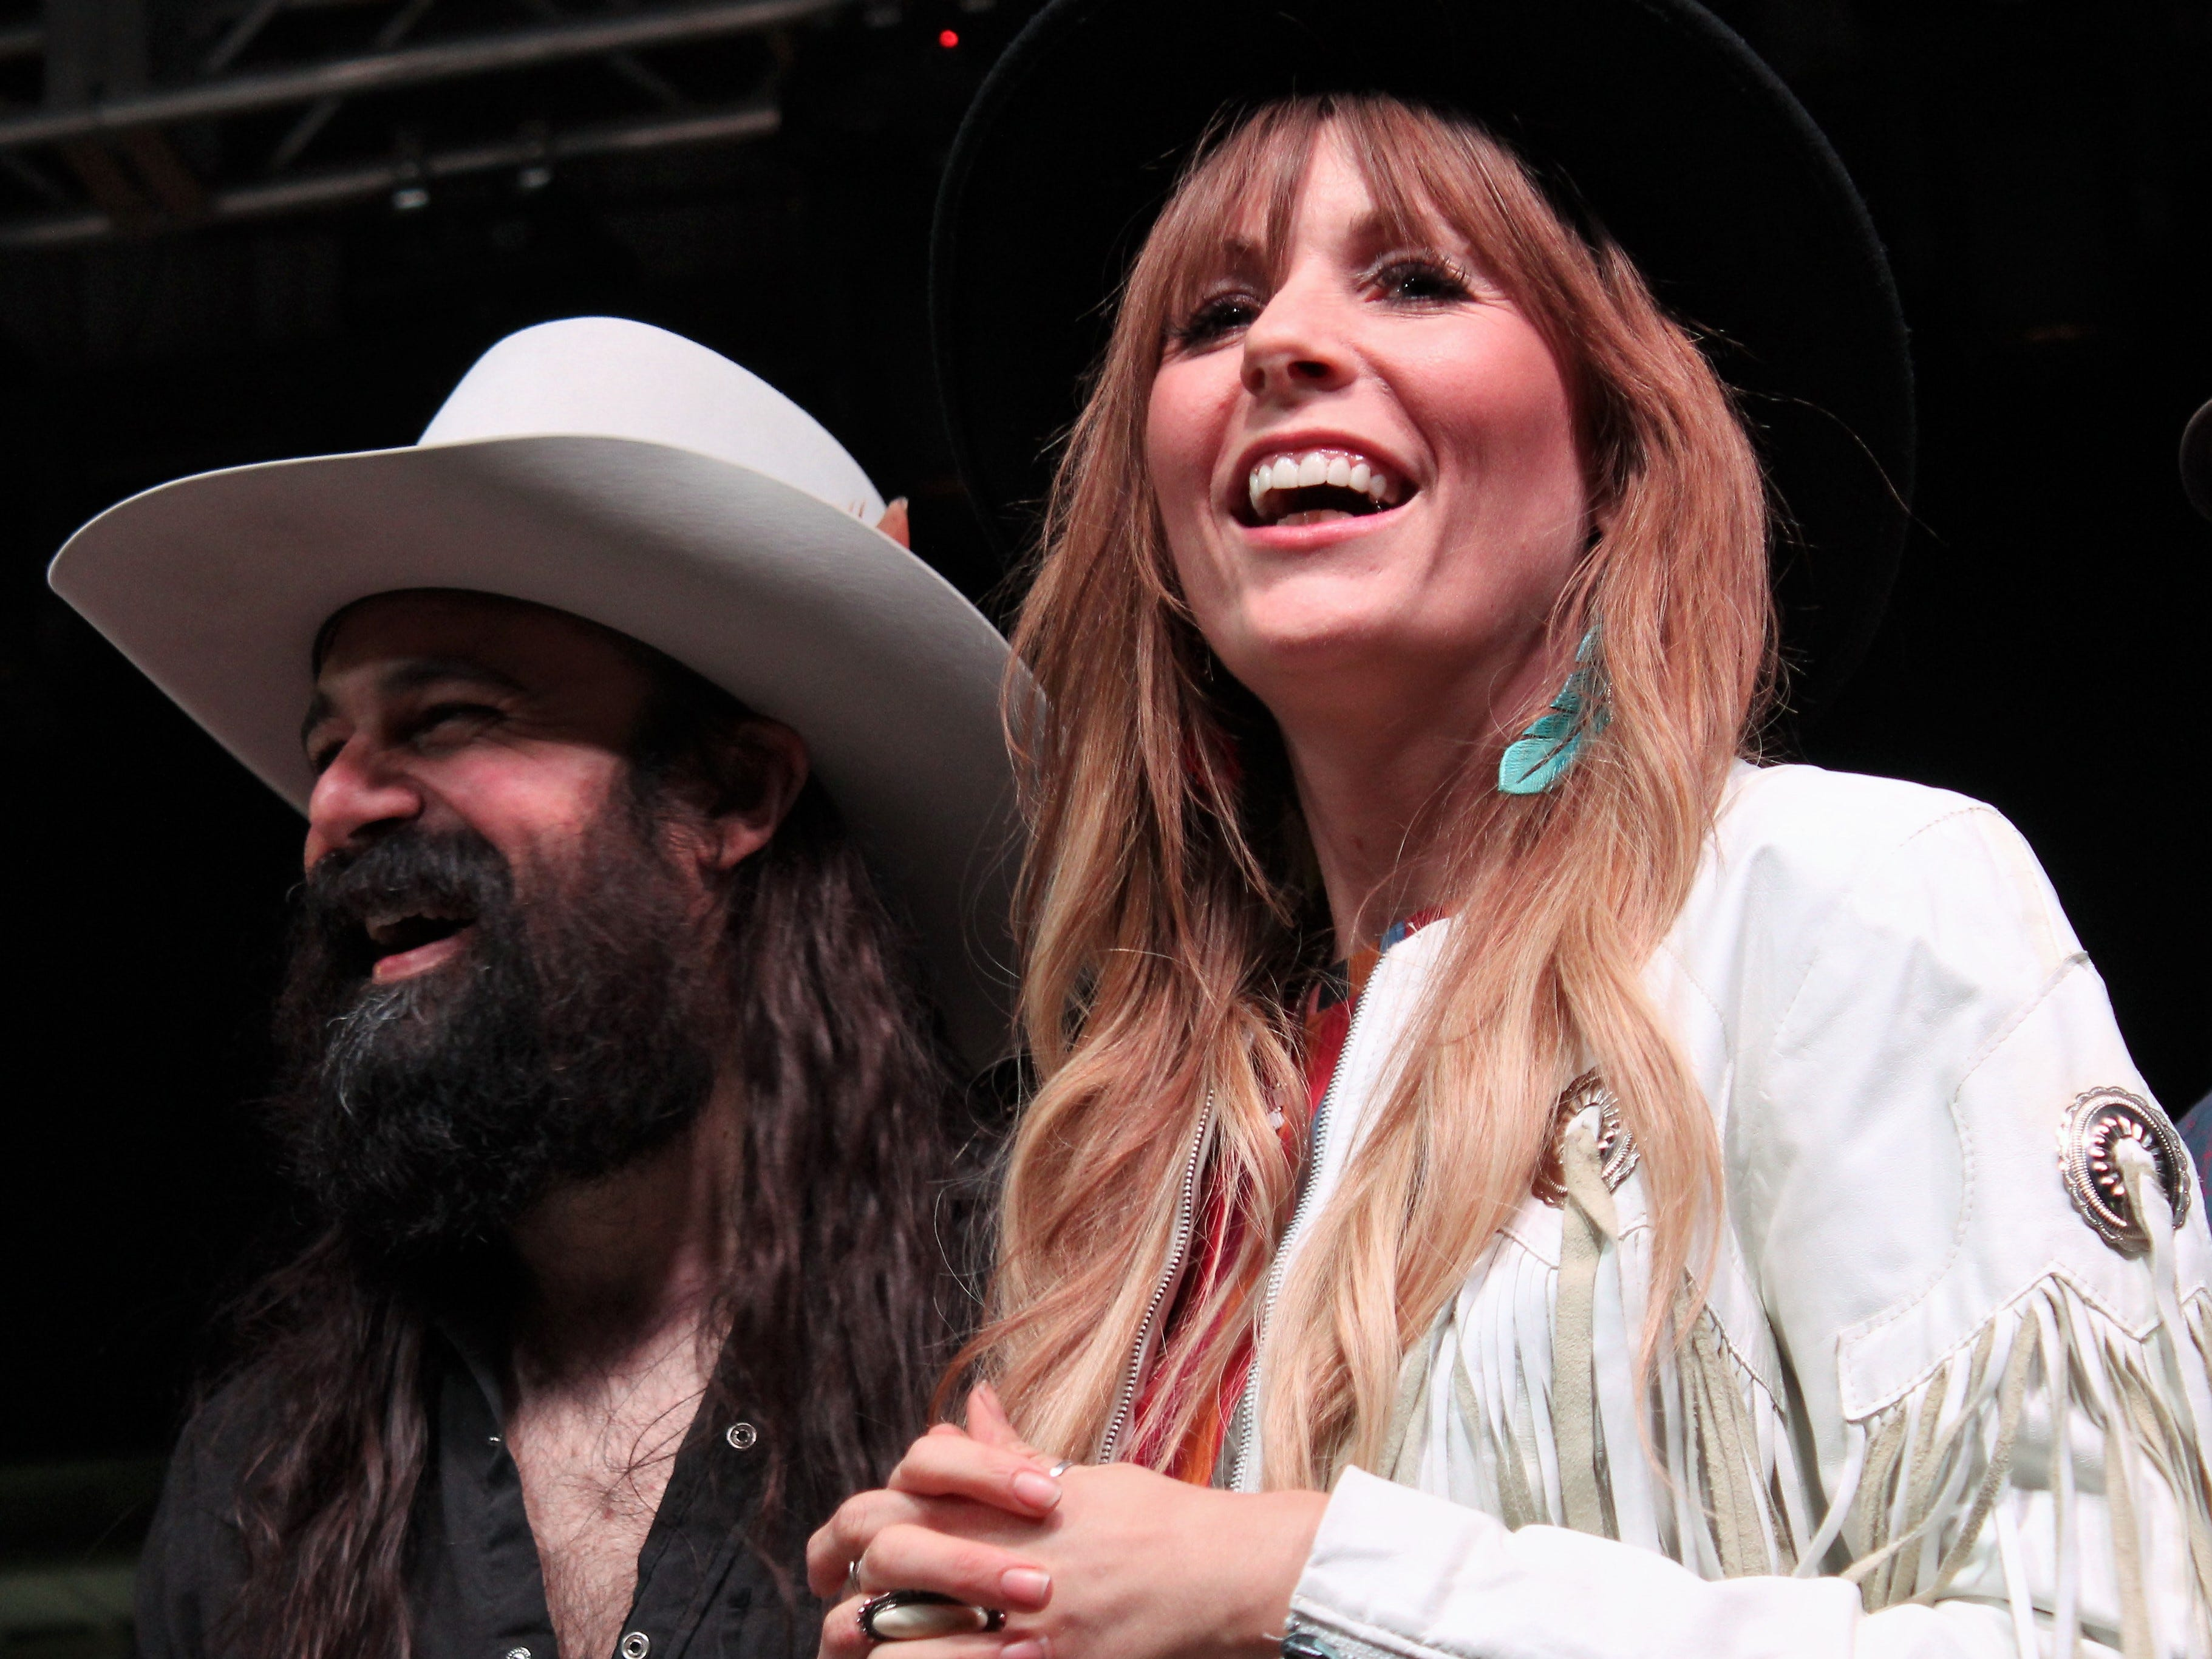 Phil Hamiton and Erica Perry laugh during Friday evening introduction of Midland. The Hamiltons were scheduled to perform Saturday March 23, 2019, at the Outlaws & Legends Musical Festival at the Back Porch of Texas.